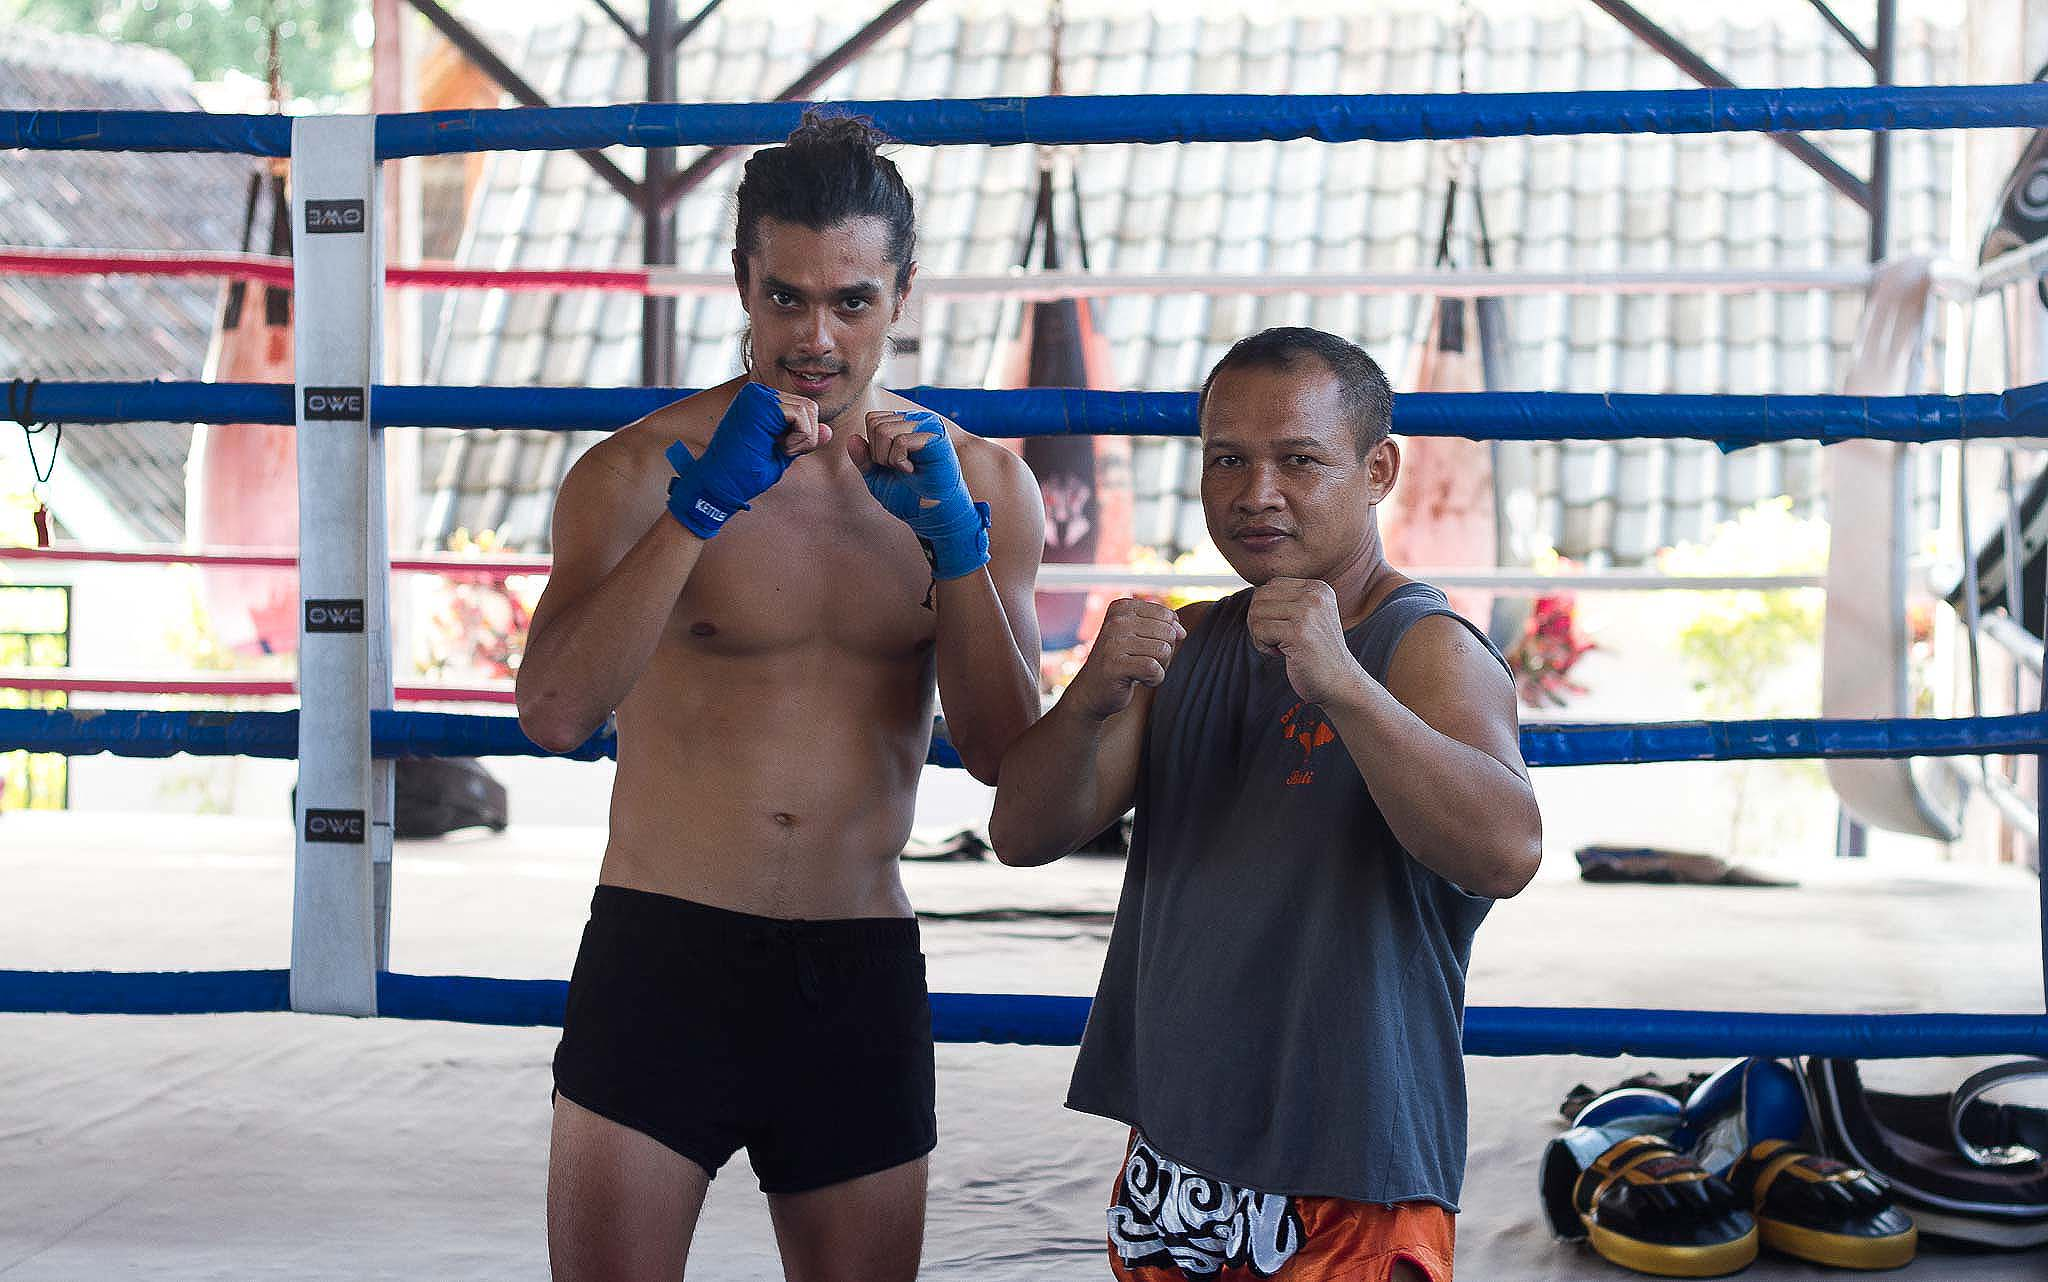 Two man are standing in a boxing position in Thailand.